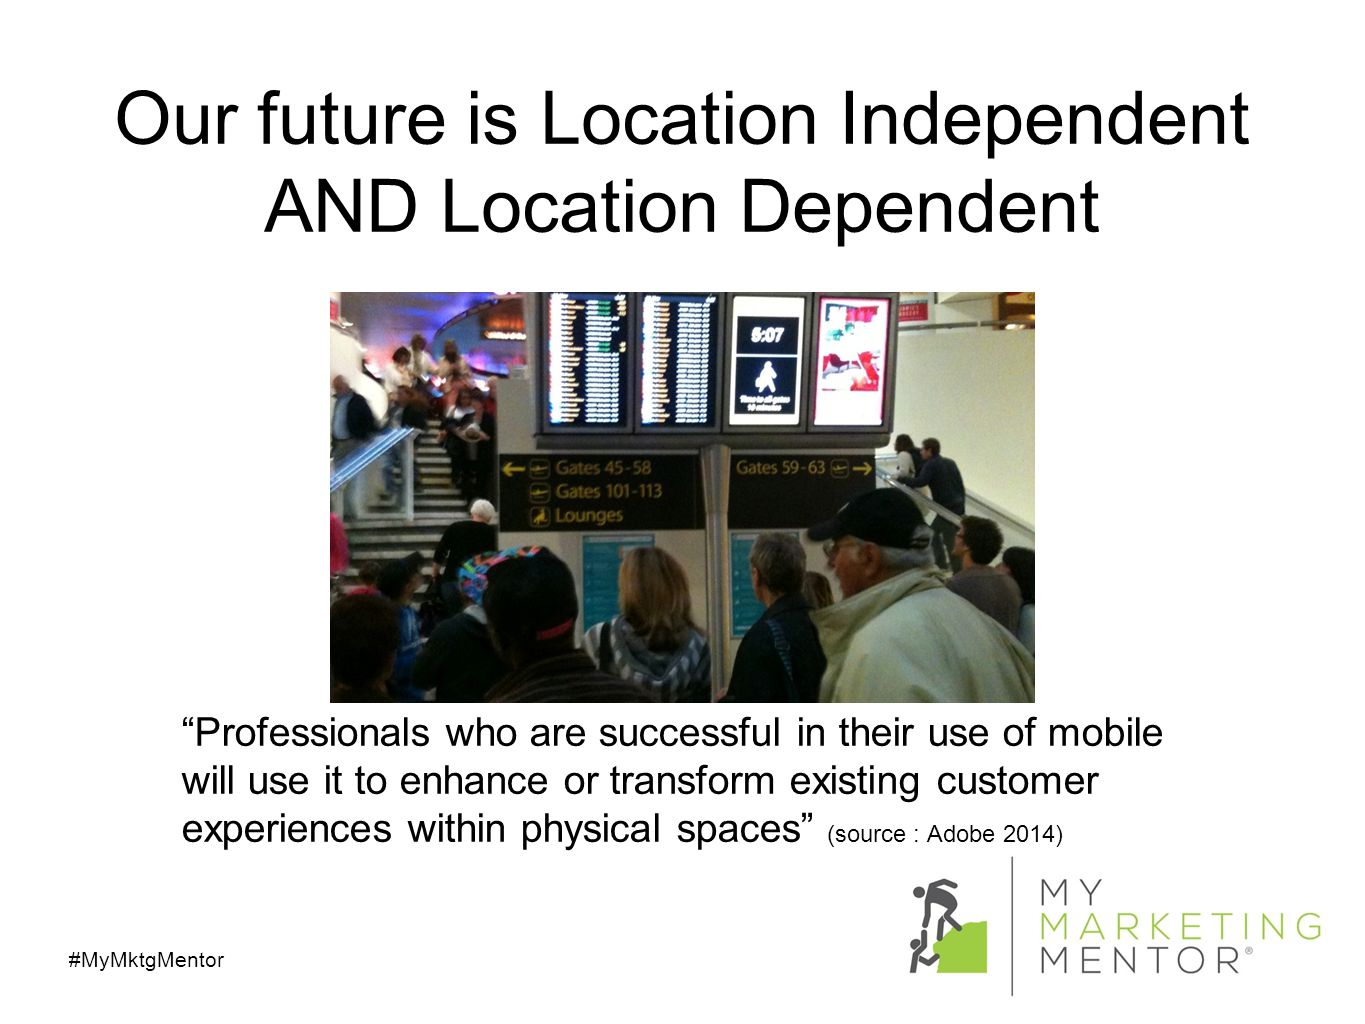 Our future is Location Independent AND Location Dependent #MyMktgMentor Professionals who are successful in their use of mobile will use it to enhance or transform existing customer experiences within physical spaces (source : Adobe 2014)